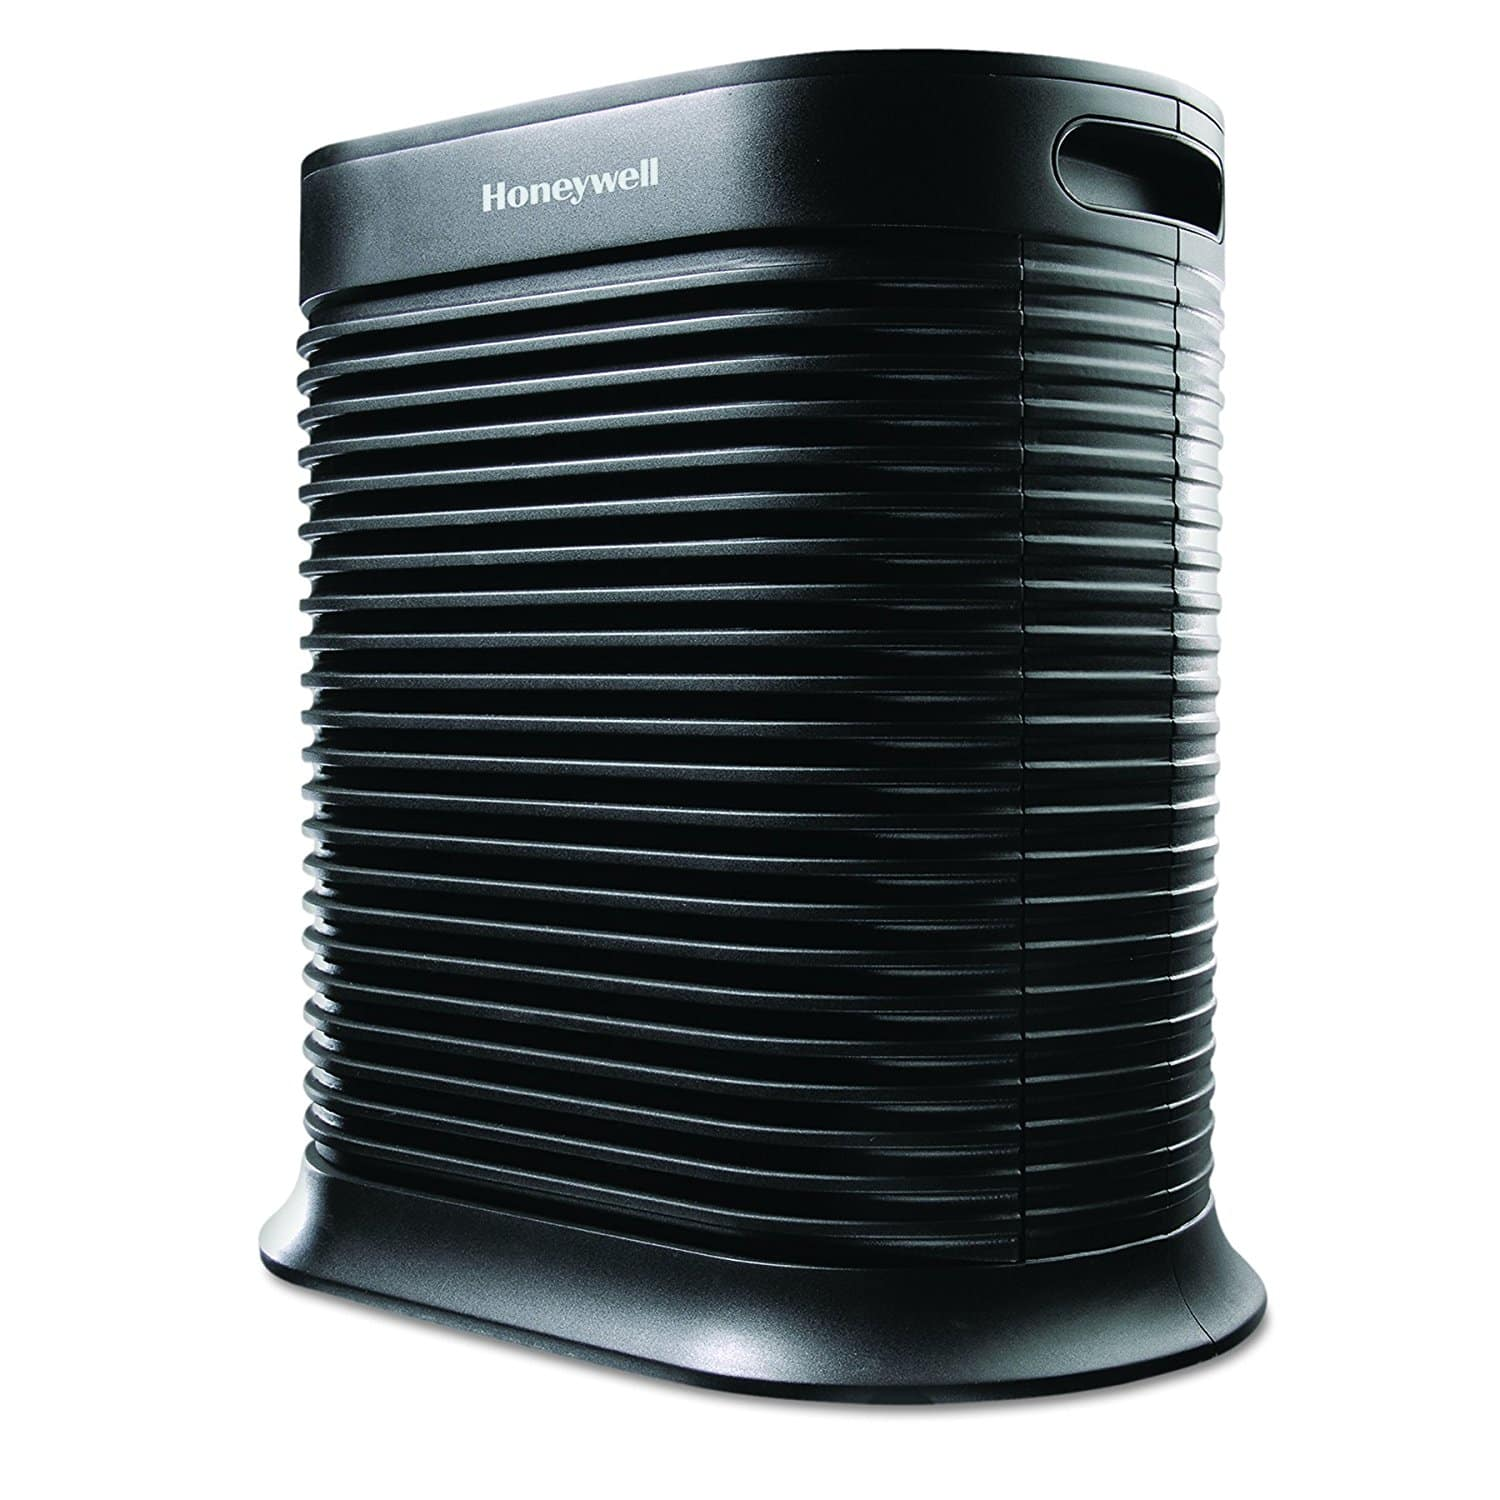 Honeywell True HEPA Allergen Remover Air Purifier (Top Rated) 465 sq. Ft, HPA300 $172.49 @ amazon reg:249:00 (socal fire air pollutant remover)